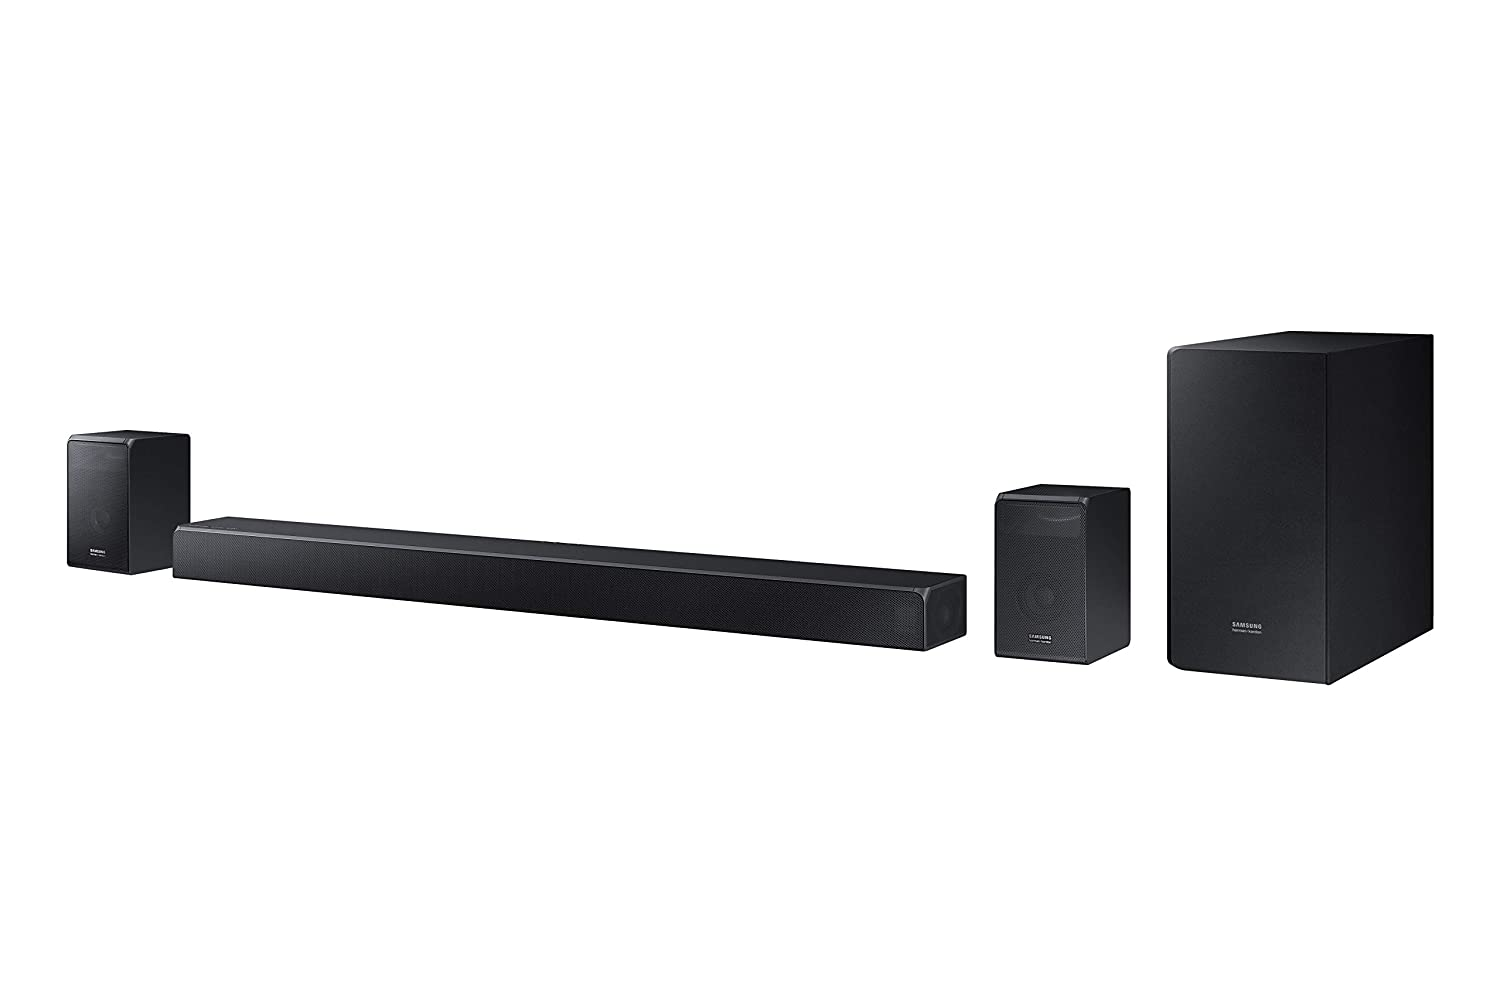 HW-N950 Samsung Soundbar Black Friday Deal 2019